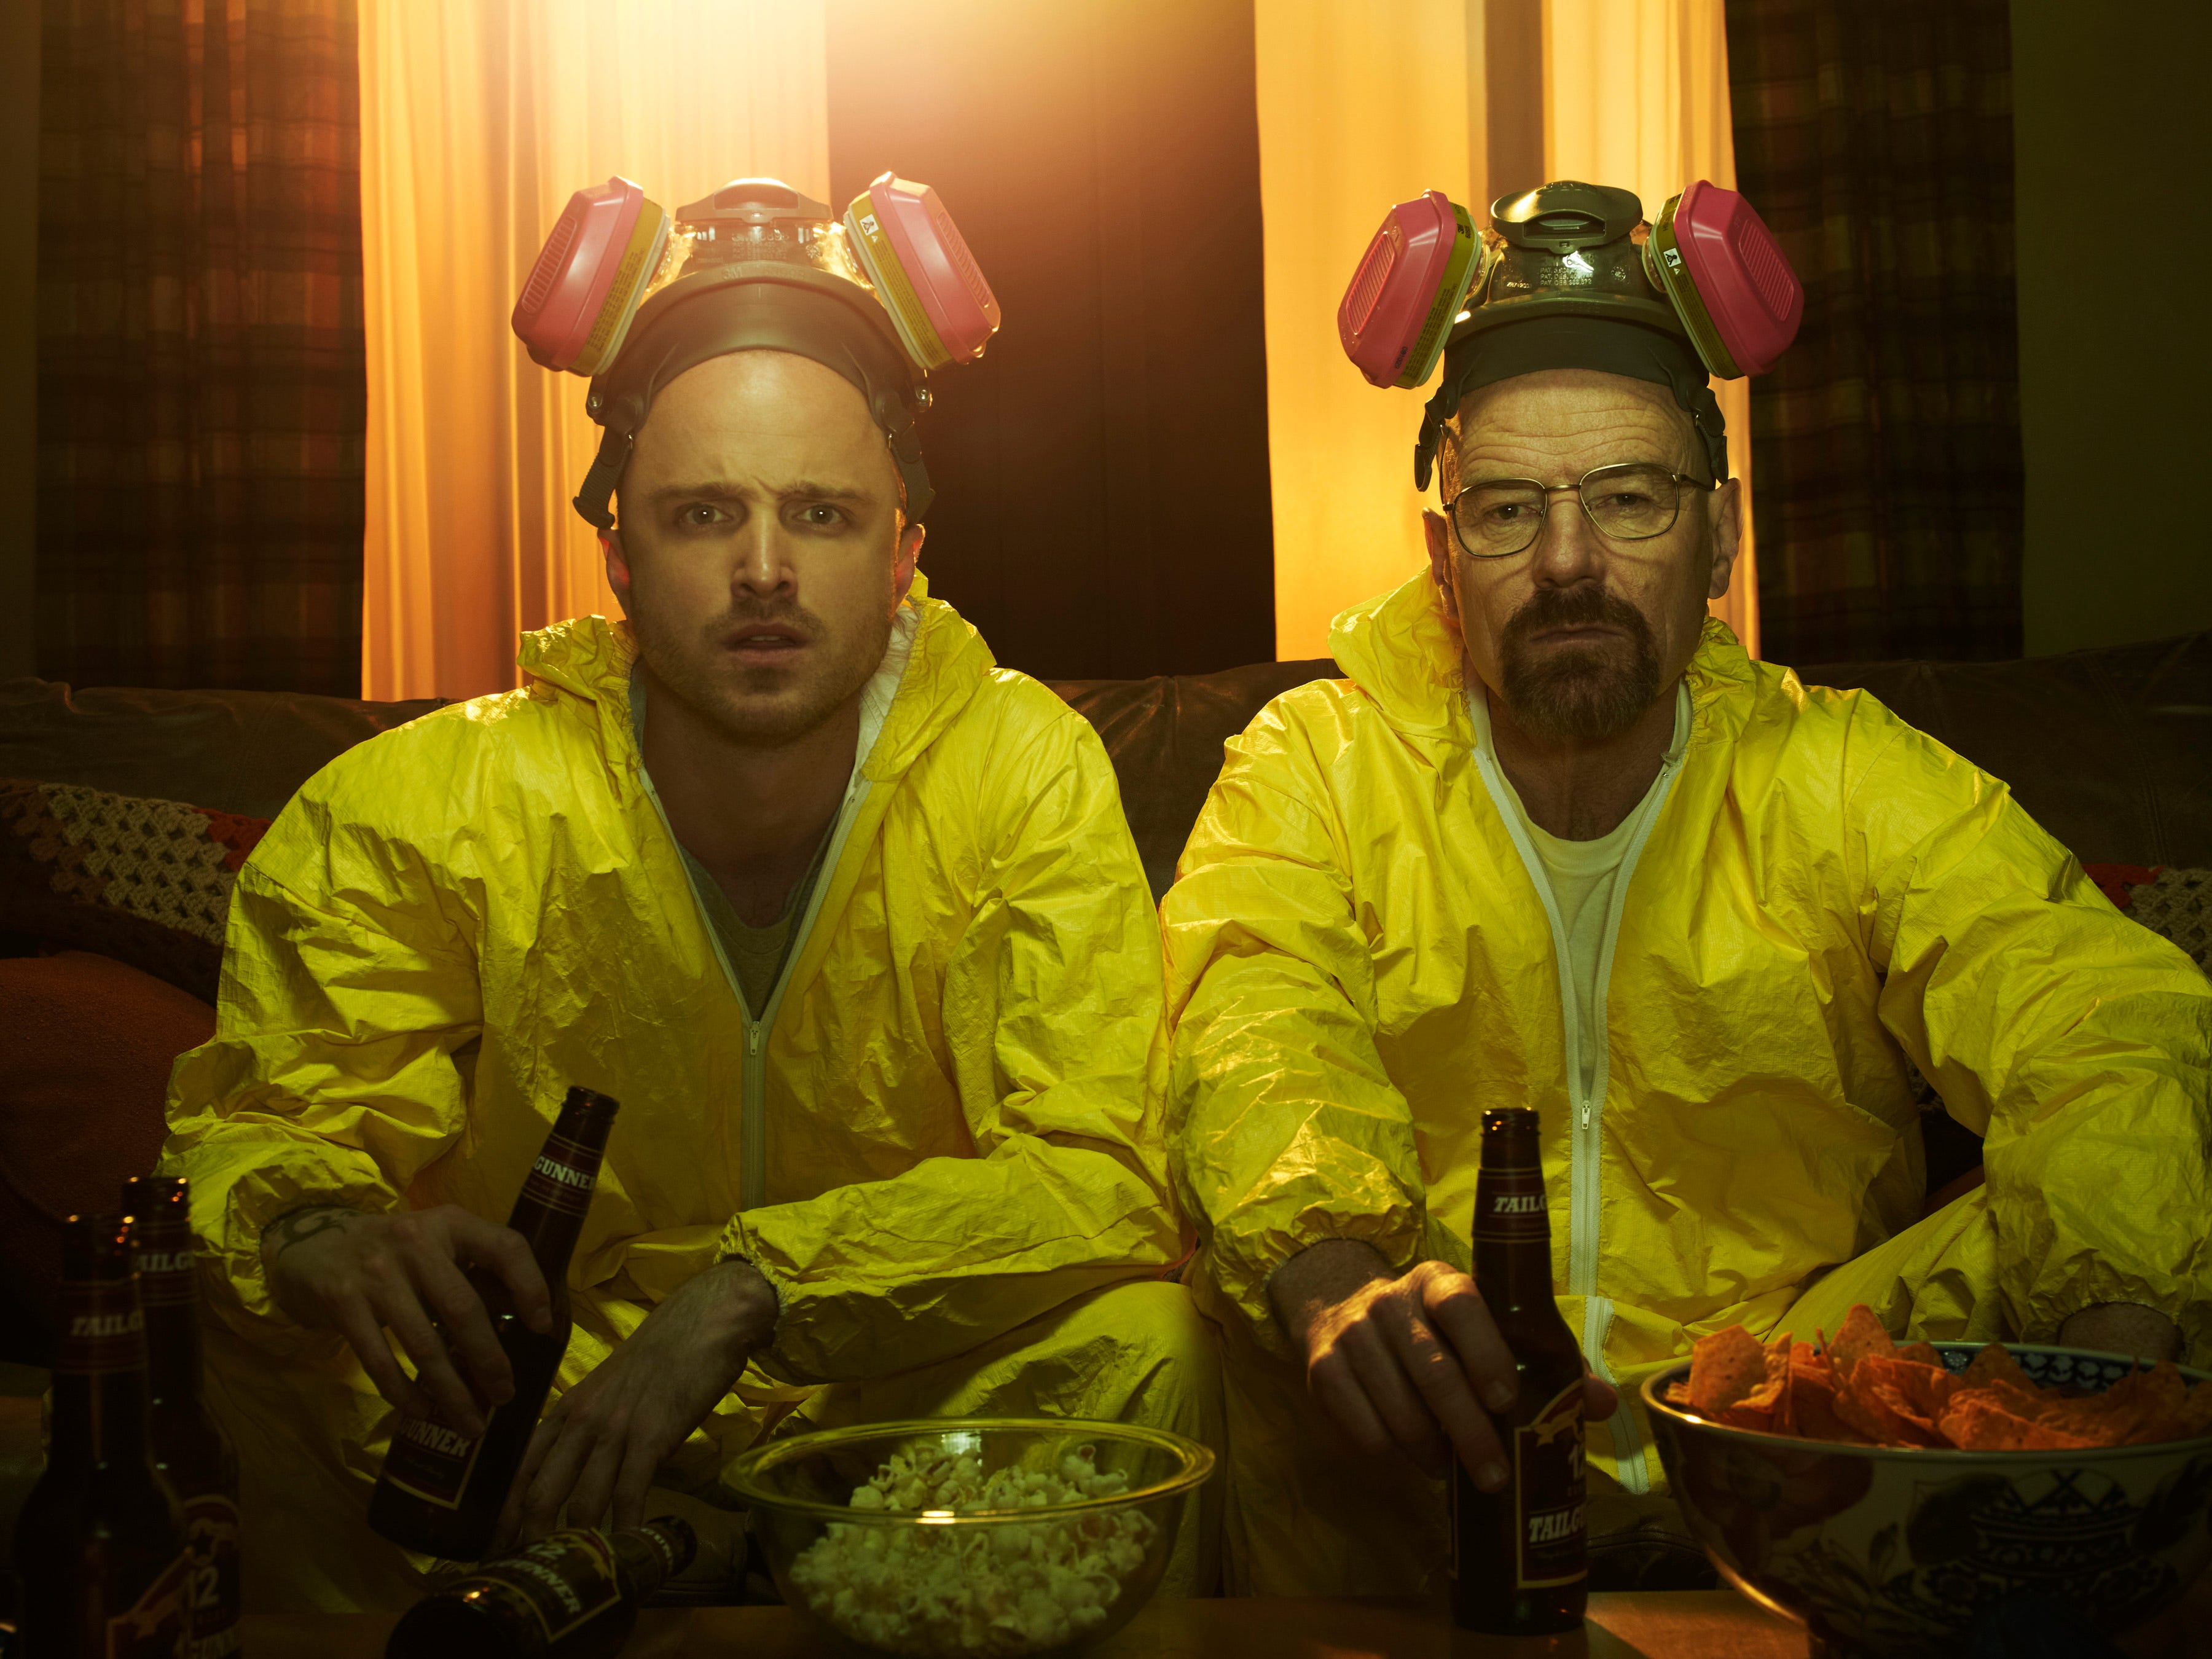 'Breaking Bad' drew its biggest audience yet with Sunday's return for a final run on AMC.